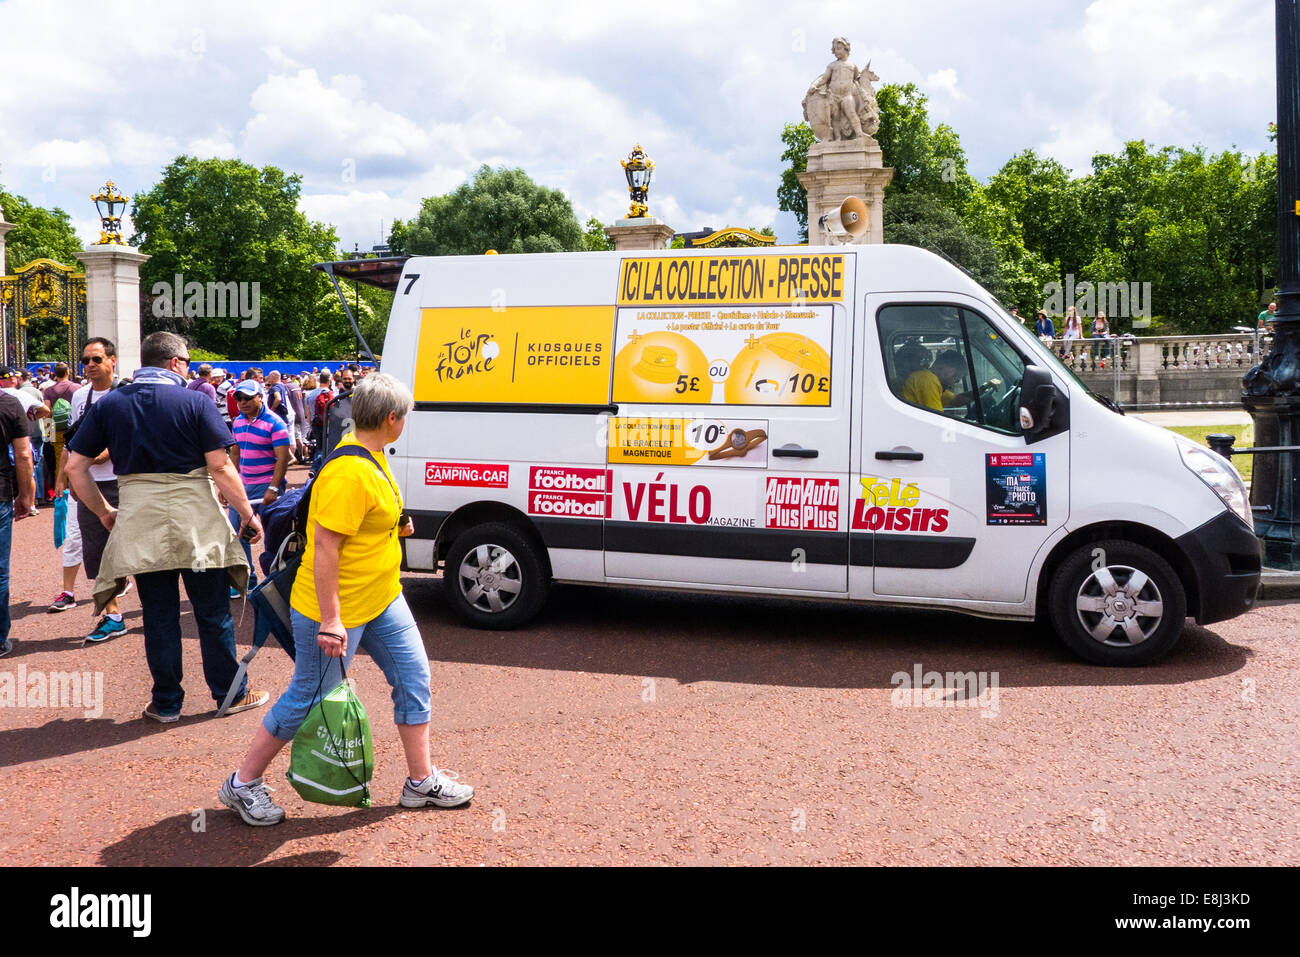 The Tour de France promotional van at the stage finish on the Mall, London. 2014 - Stock Image